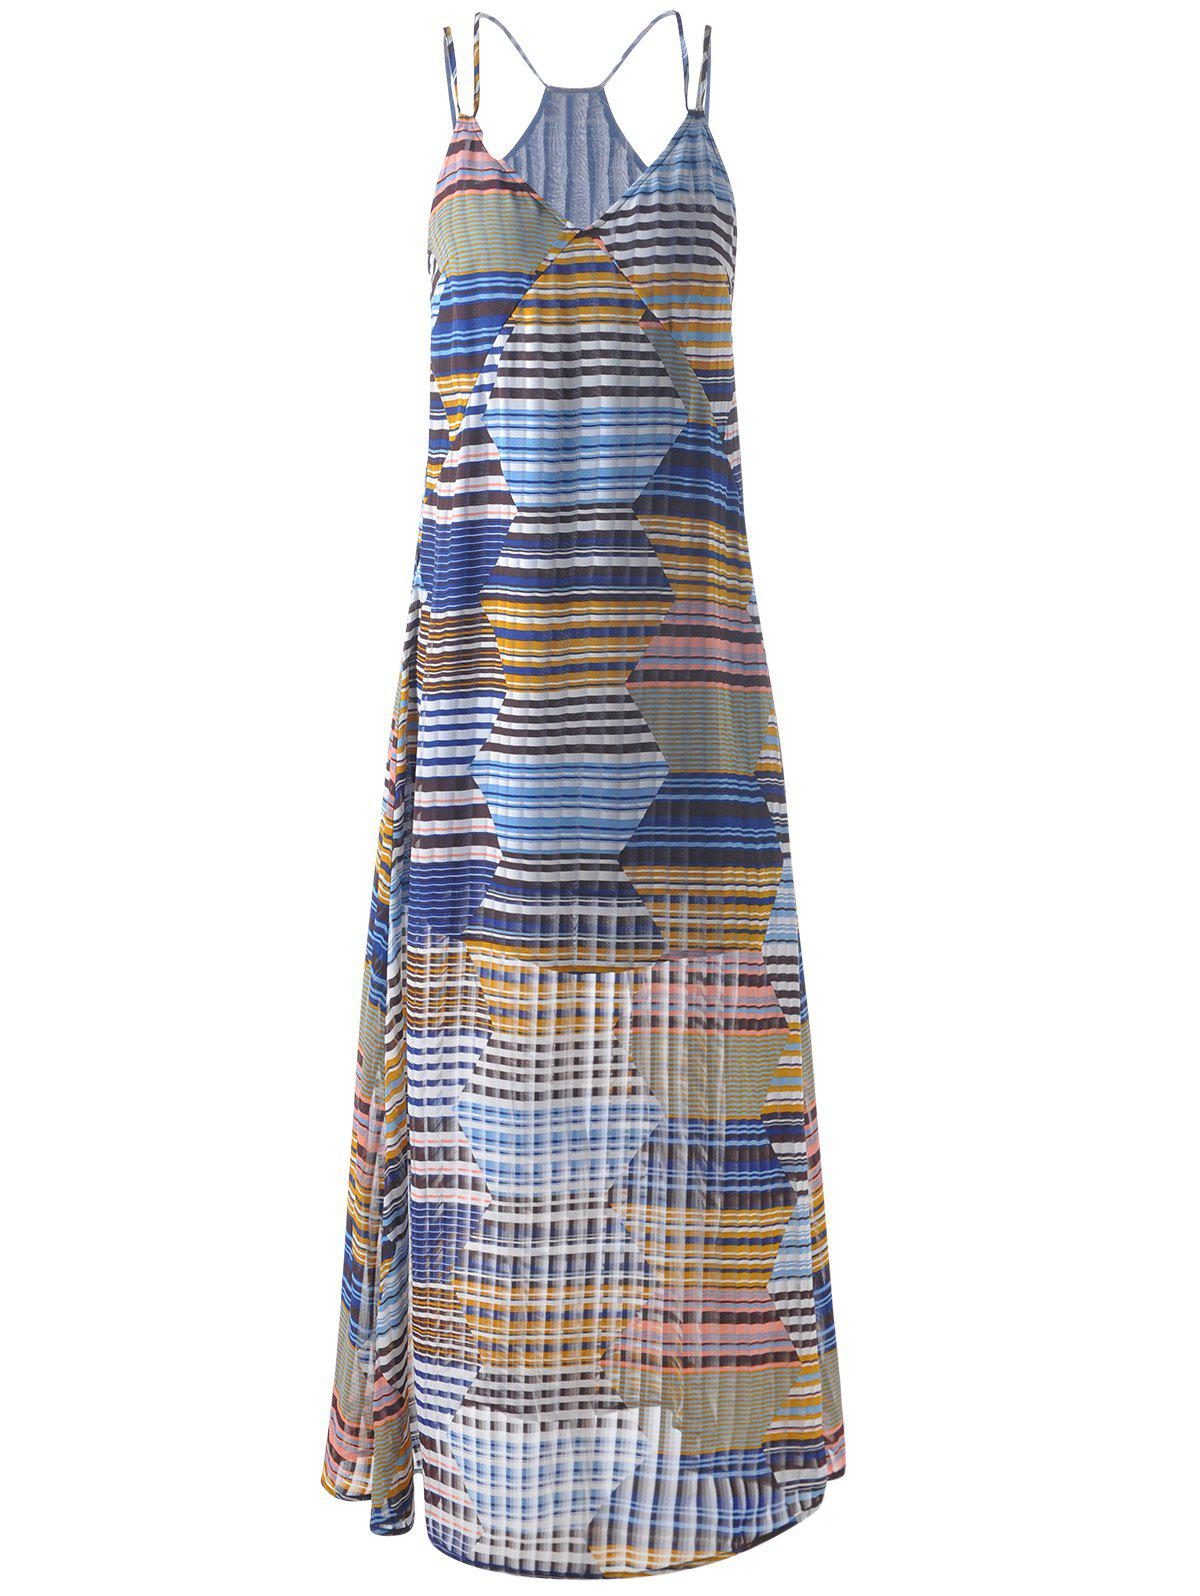 Spaghetti Strap Long Striped Dress For Women - GREY/WHITE/BLUE S